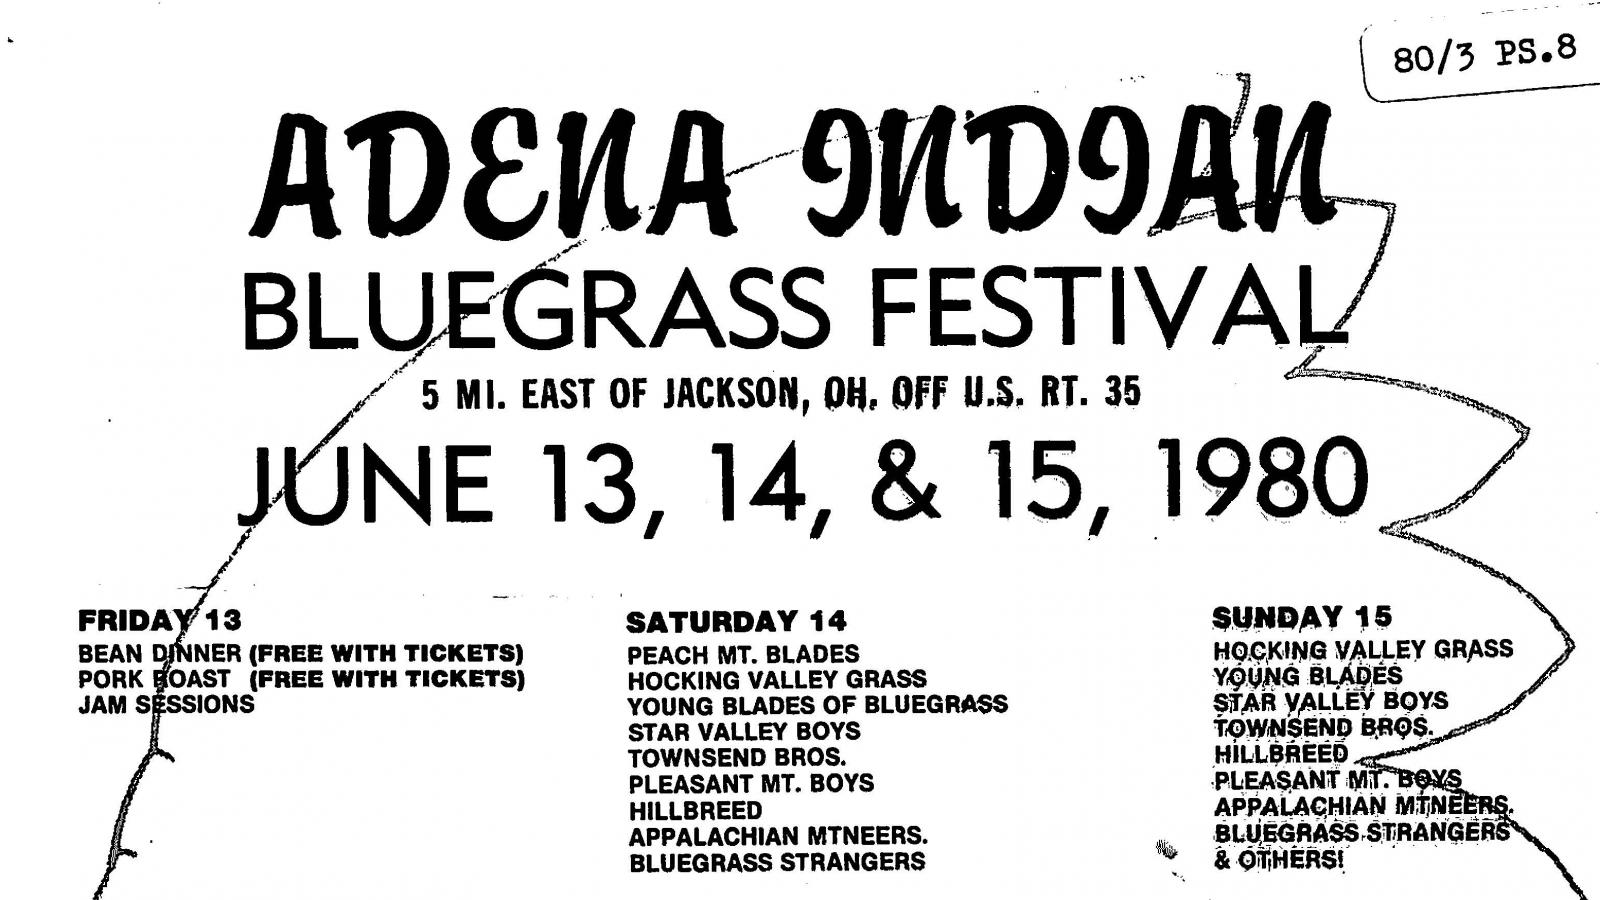 Promotional poster for the Adena Indian Bluegrass Festival, held southeast of Jackson, Ohio, on June 13,14, and 15, 1980